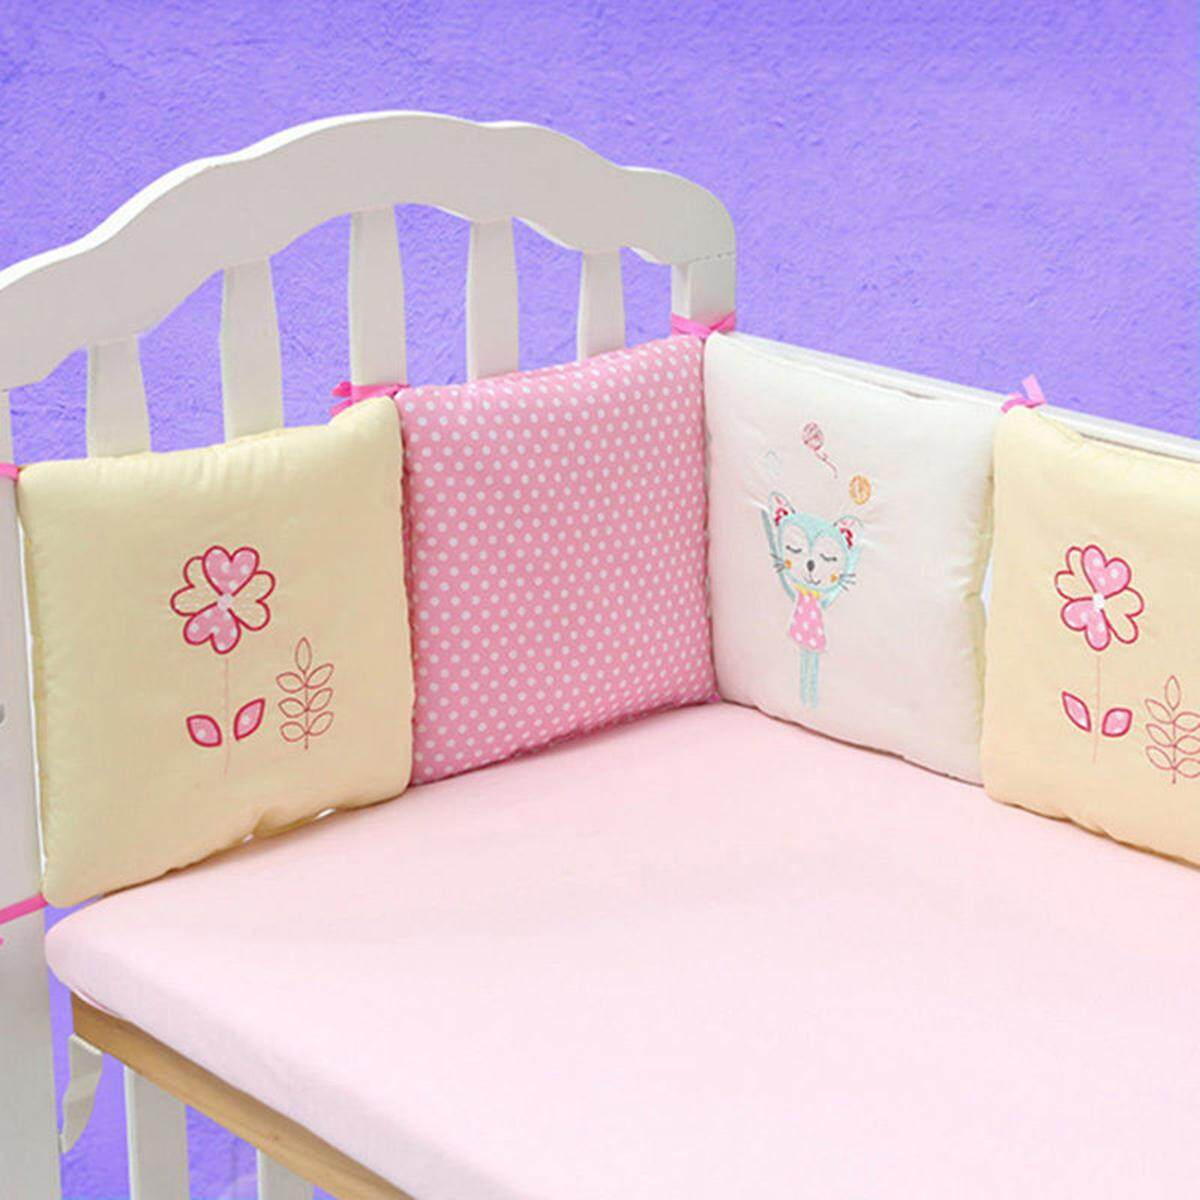 6pcs Popular Crib Bumper Protective Baby Nursery Bedding Comfy Infant Cot Pad Pink By Moonbeam.